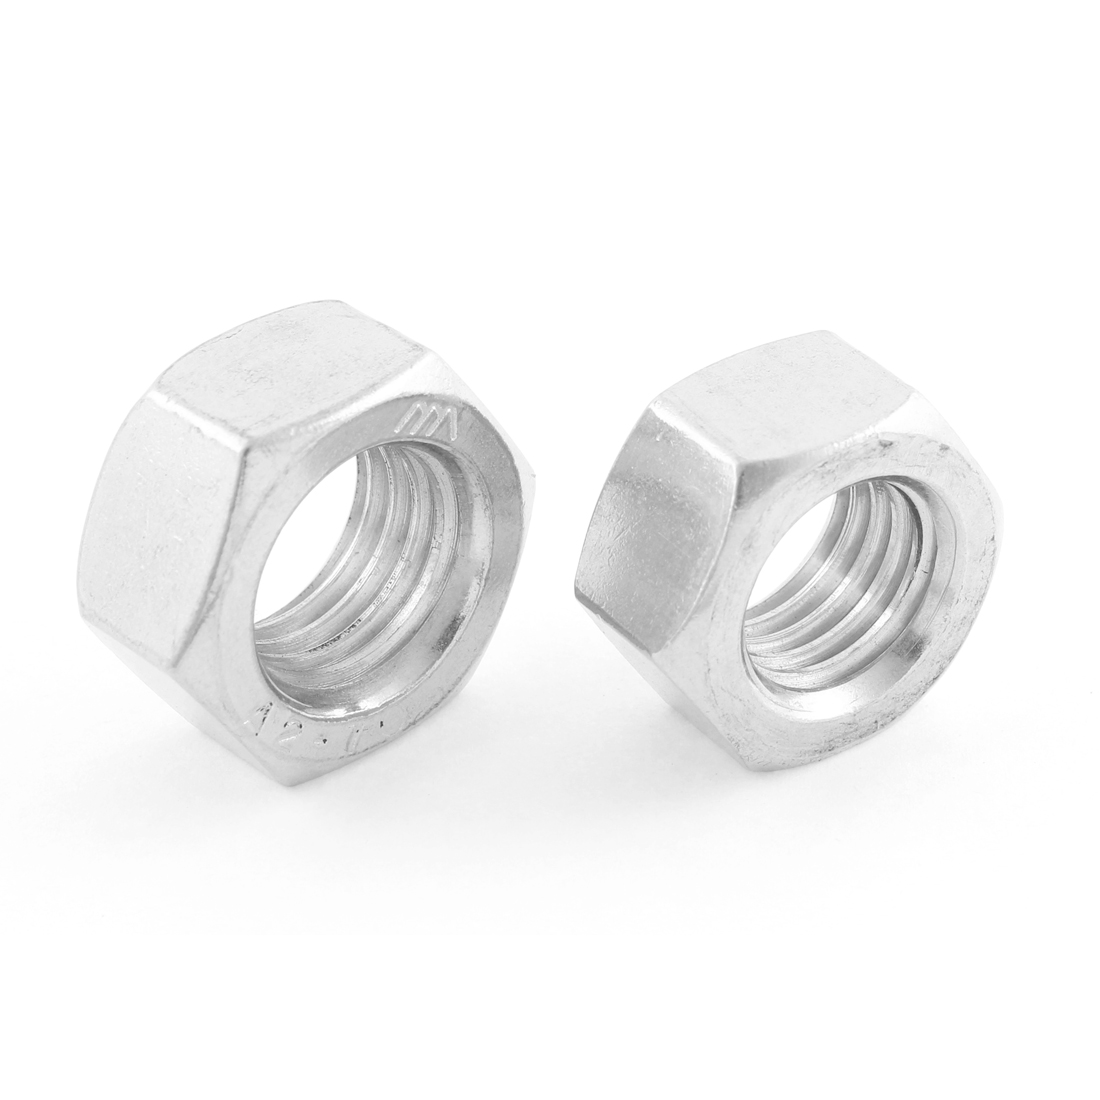 Metric M18x2.5mm Stainless Steel Finished Hexagon Hex Nut Silver Tone 2pcs